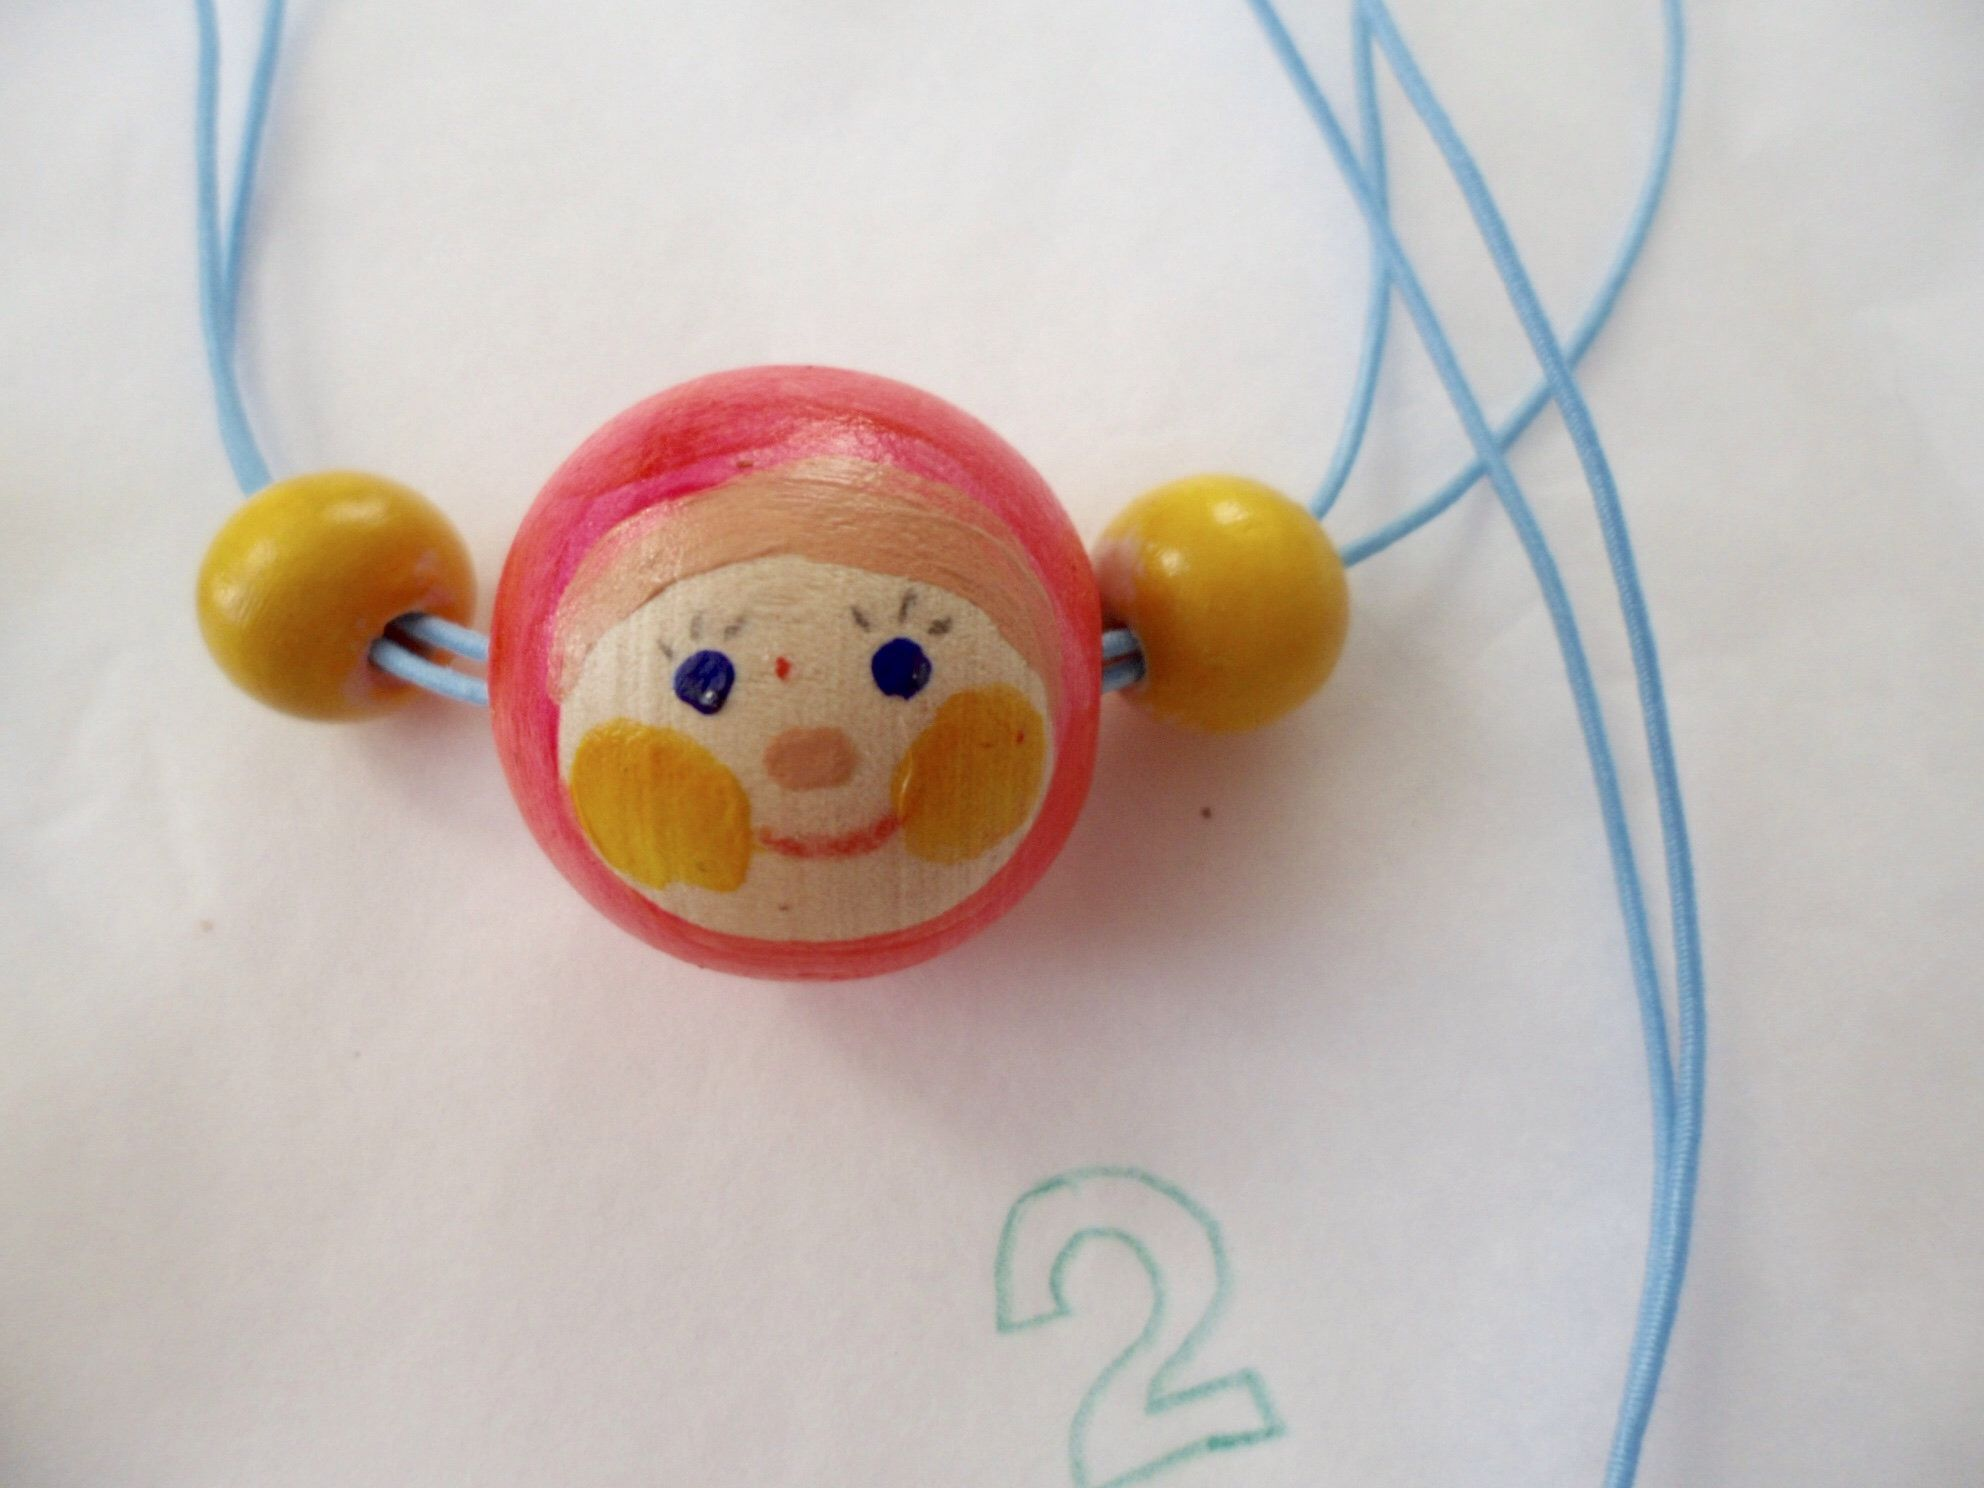 Doll face_painted necklace_wooden beads #dollfacepainting